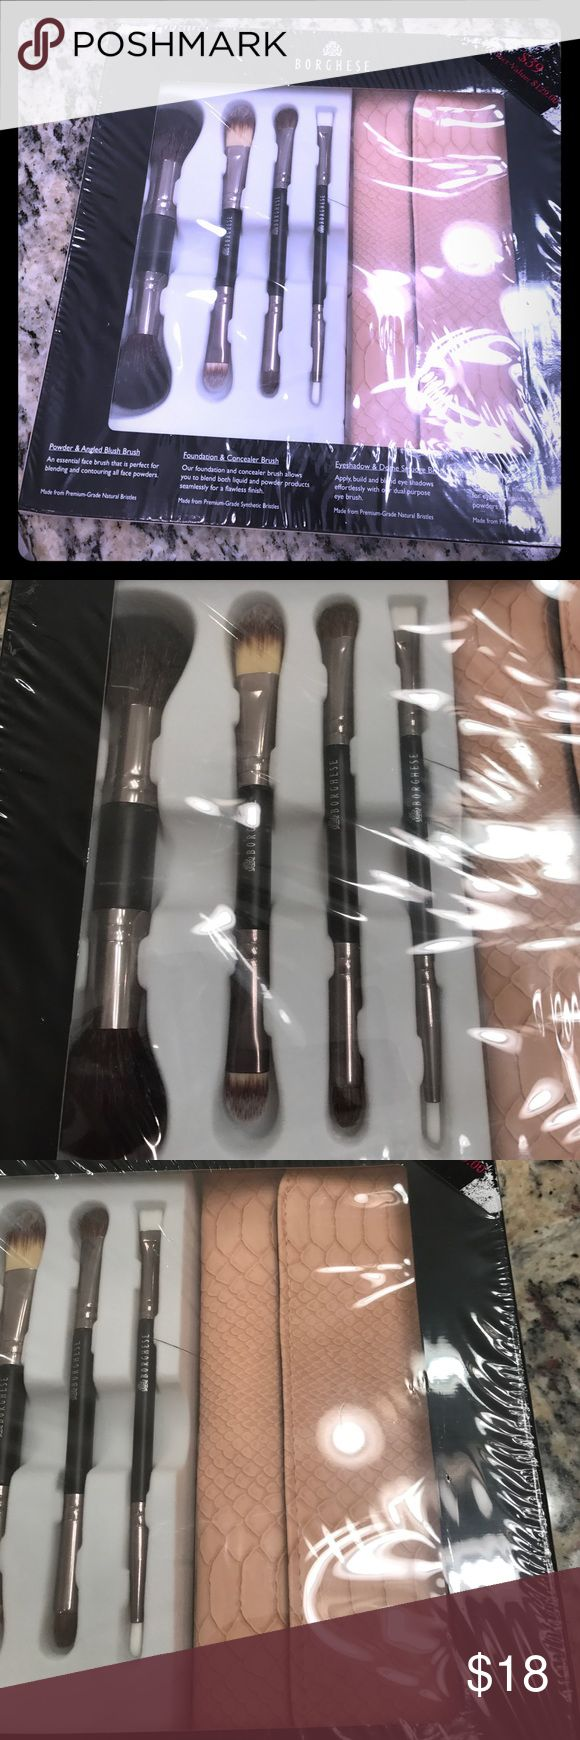 Borghese ProfessionalSelect doubleended brush set Borghese ProfessionalSelect doubleended brush set. New in package with four double ended brushes and a carrying bag.  New in package. Never opened Borghese Makeup Brushes & Tools